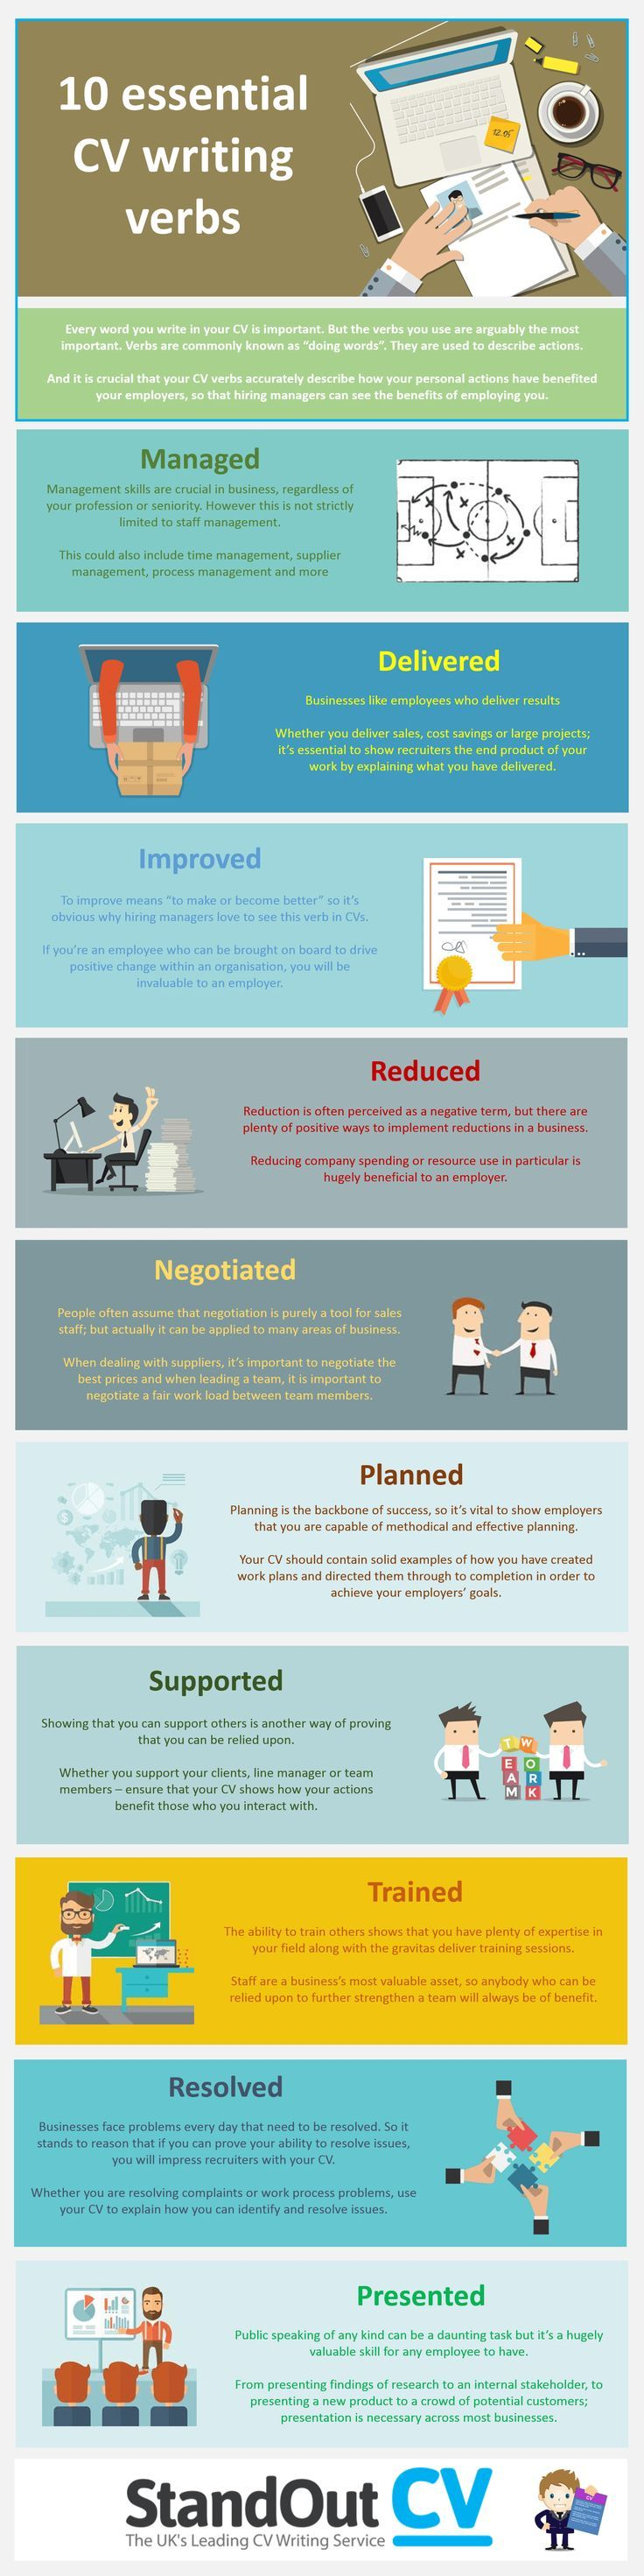 10 Essential CV Writing Verbs Infographic - http://elearninginfographics.com/10-essential-cv-writing-verbs/